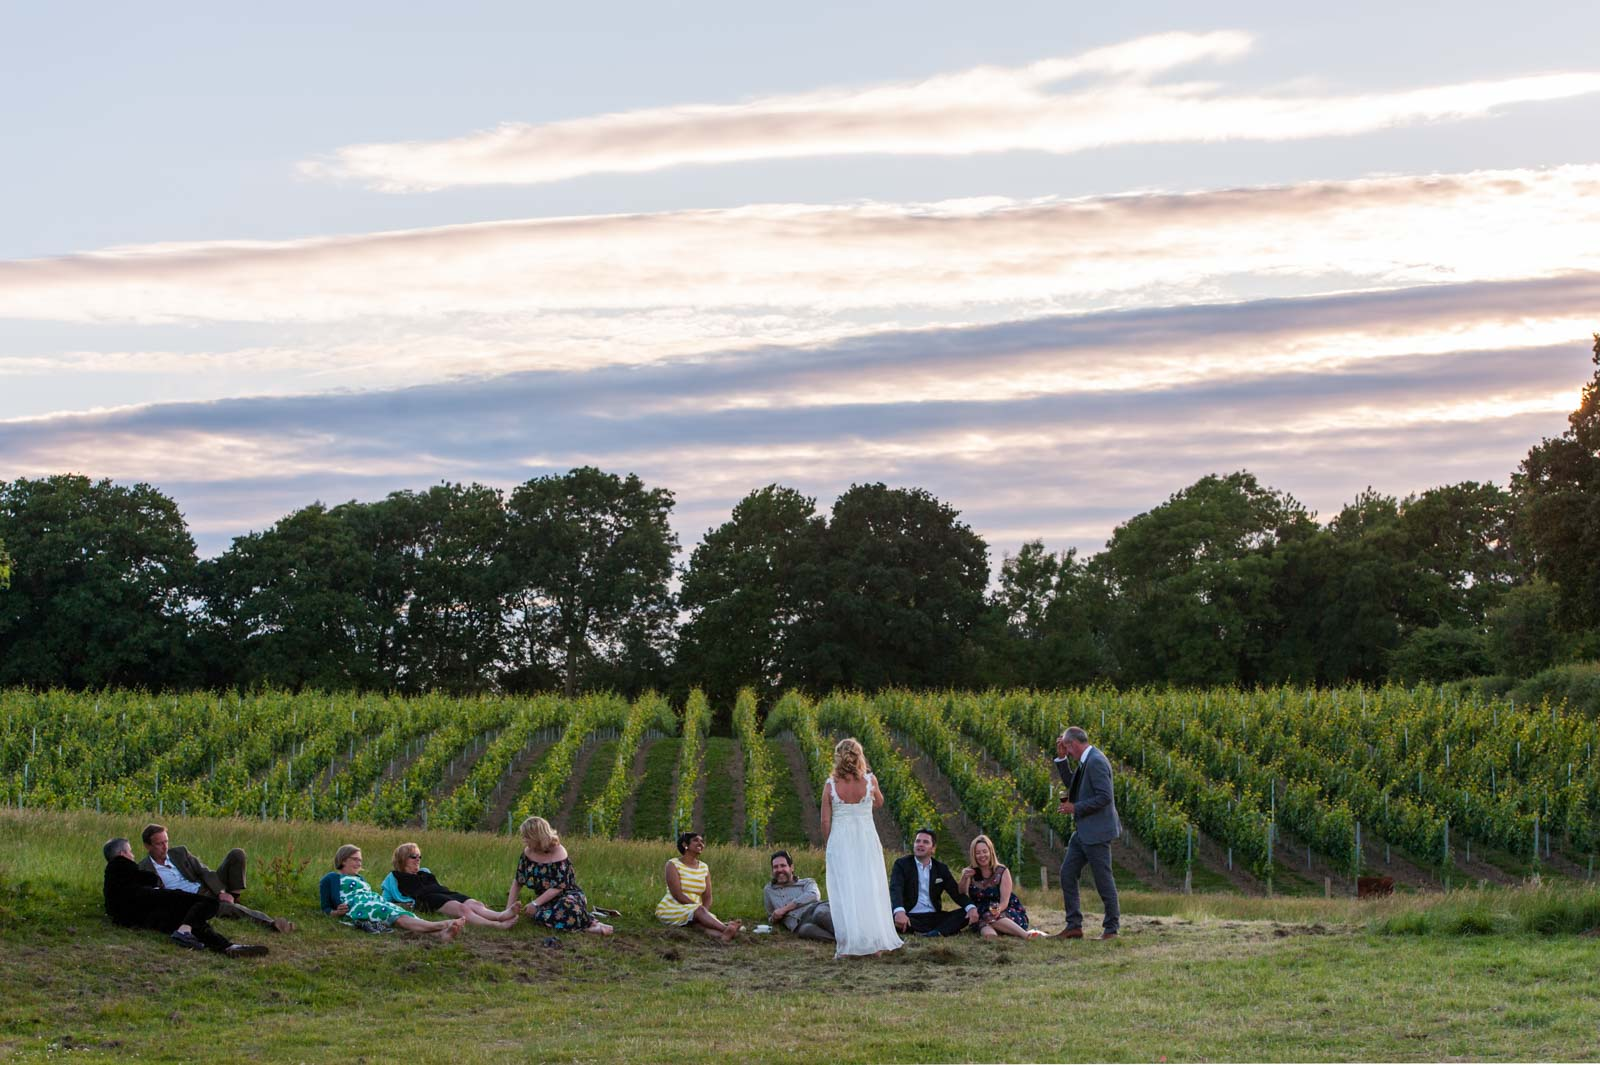 Bride and guests relaxing in a field at Court Gardens Farm wedding